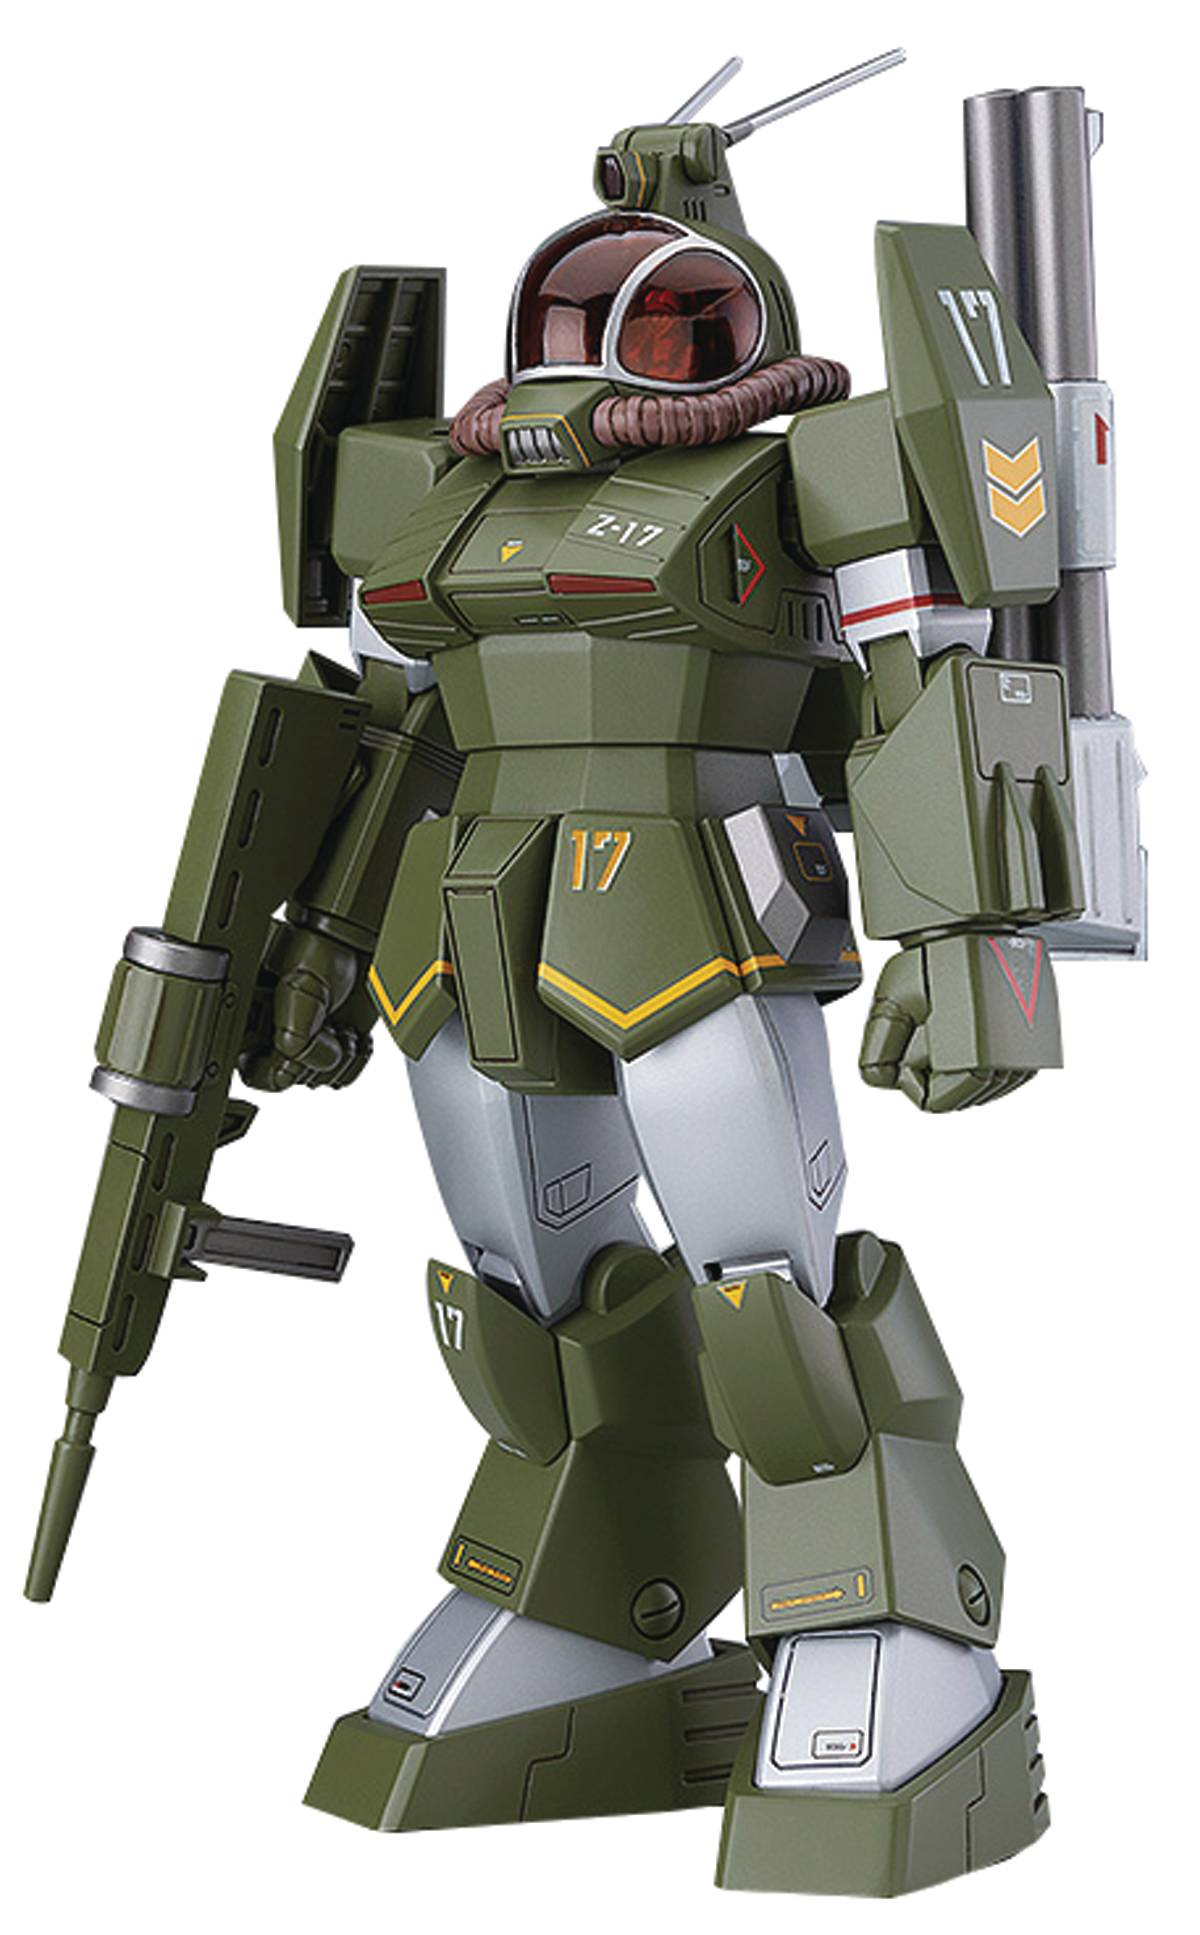 Fang of the Sun Dougram: Soltic H8 Roundfacer Combat Arms Model Kit